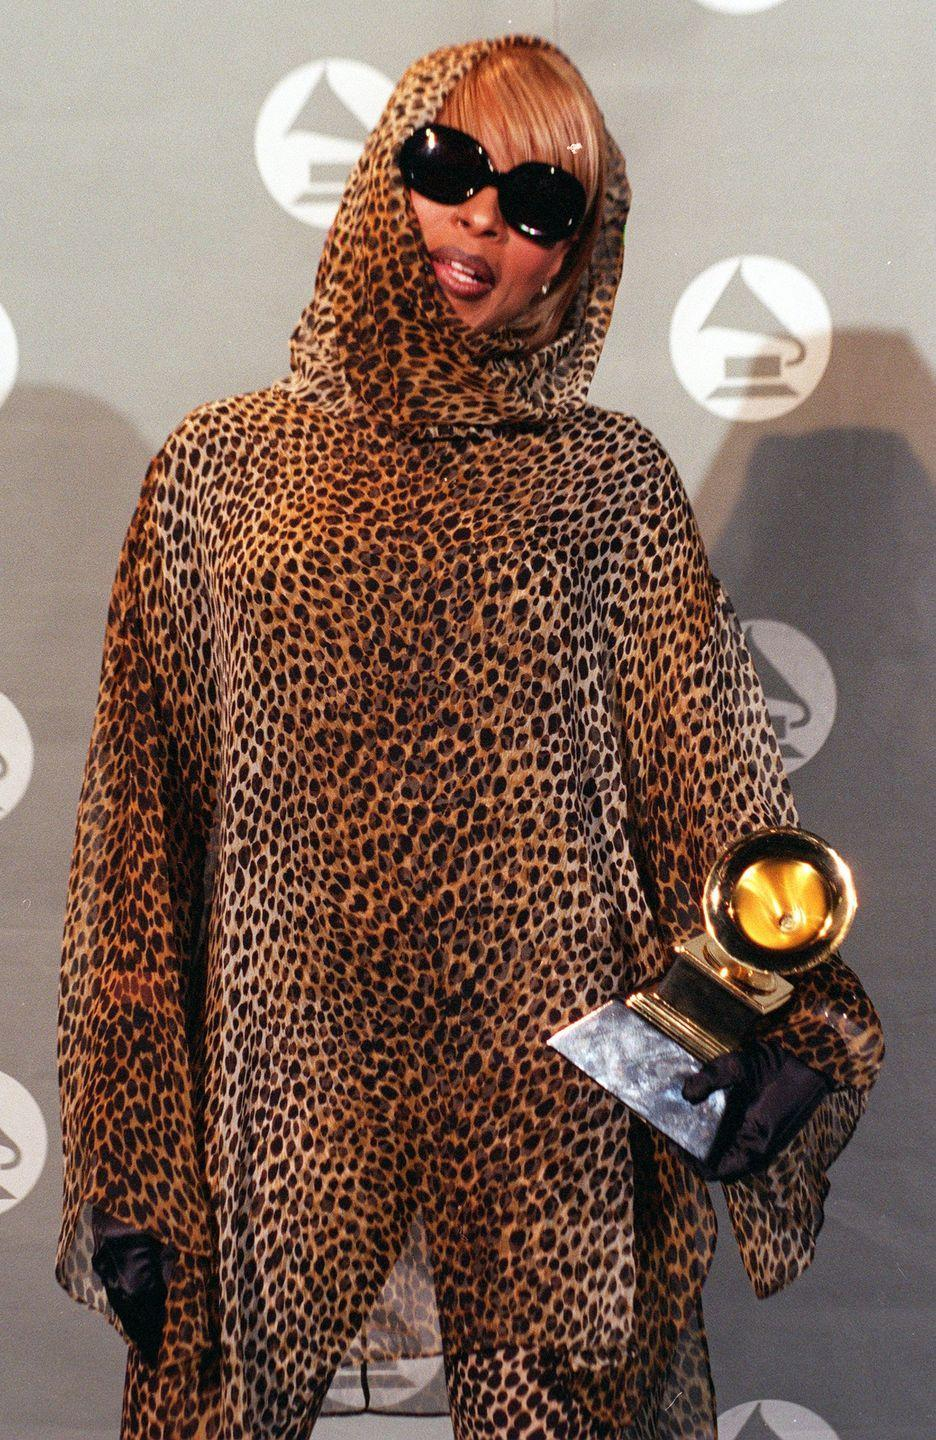 <p>Mary J. Blige went ALL out with the leopard print at the Grammys and even picked up an award for Best Rap Performance by a Duo or Group. Her hood and oversize shades definitely complete the 'fit. </p>